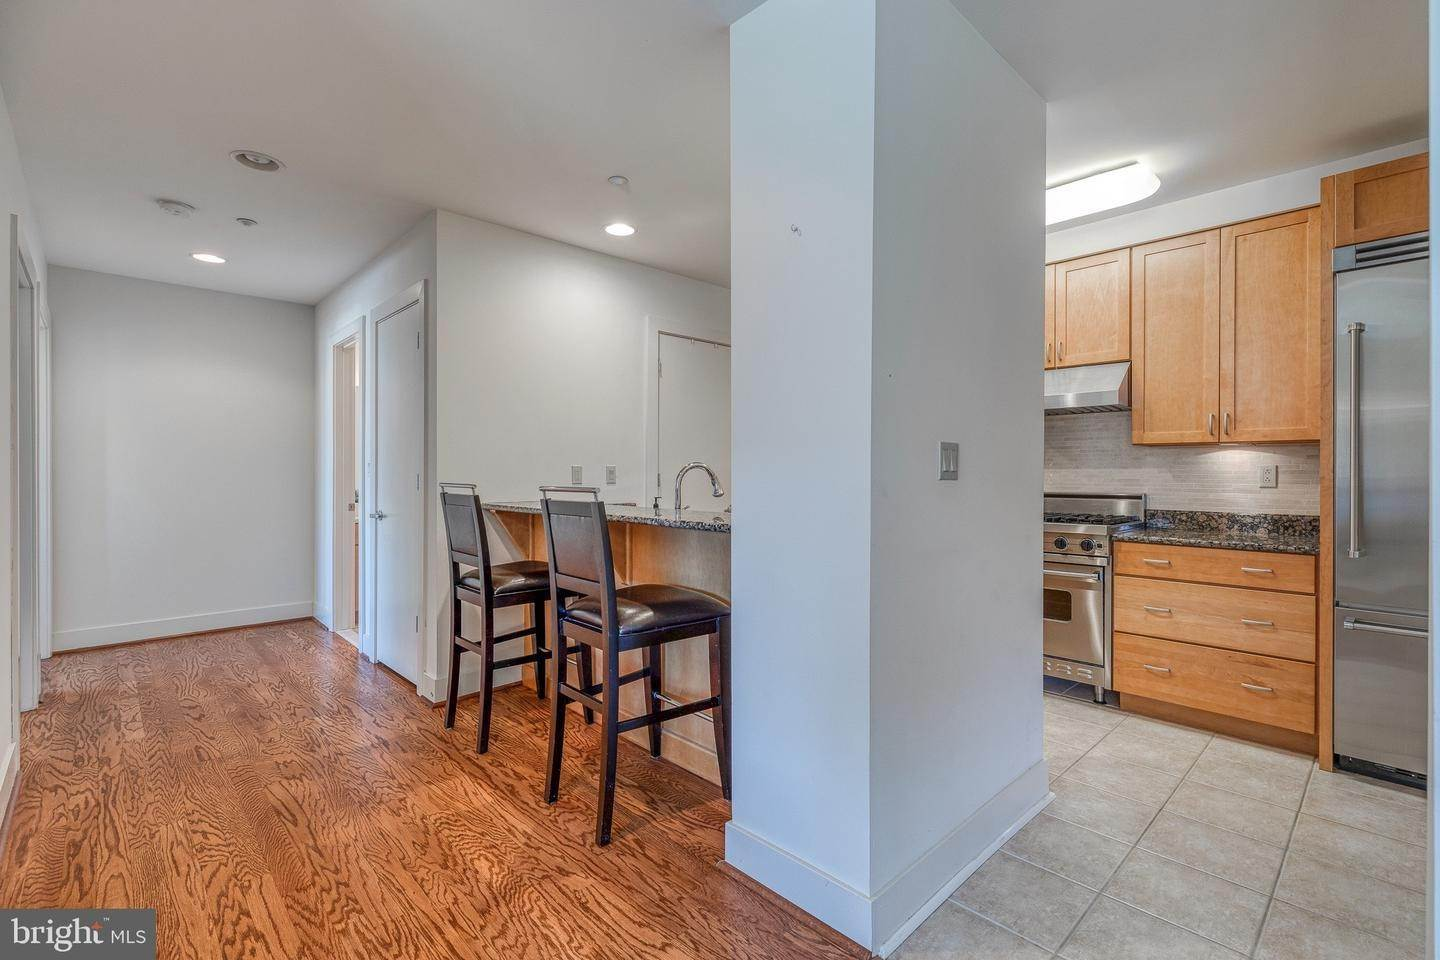 14. Apartments for Sale at 23 S 23RD ST #5B Philadelphia, Pennsylvania 19103 United States